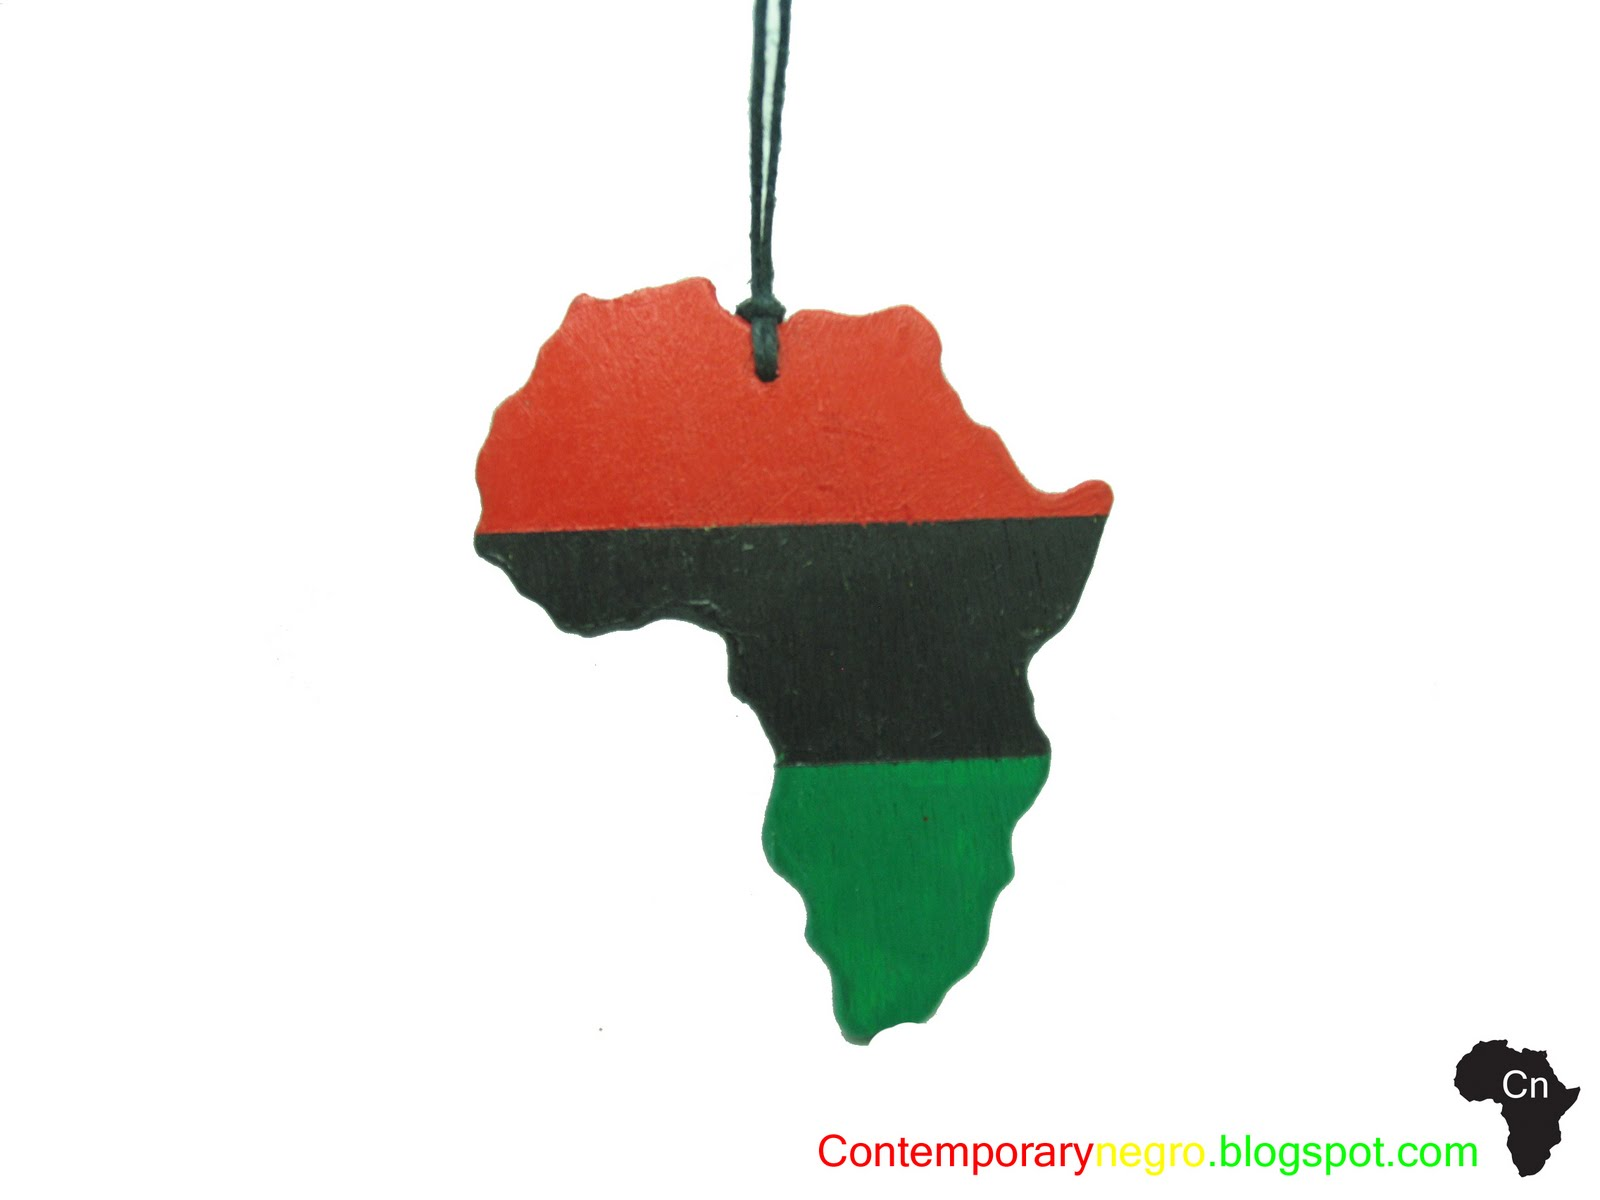 Contemporary _negro | Modern Day Afrocentricity